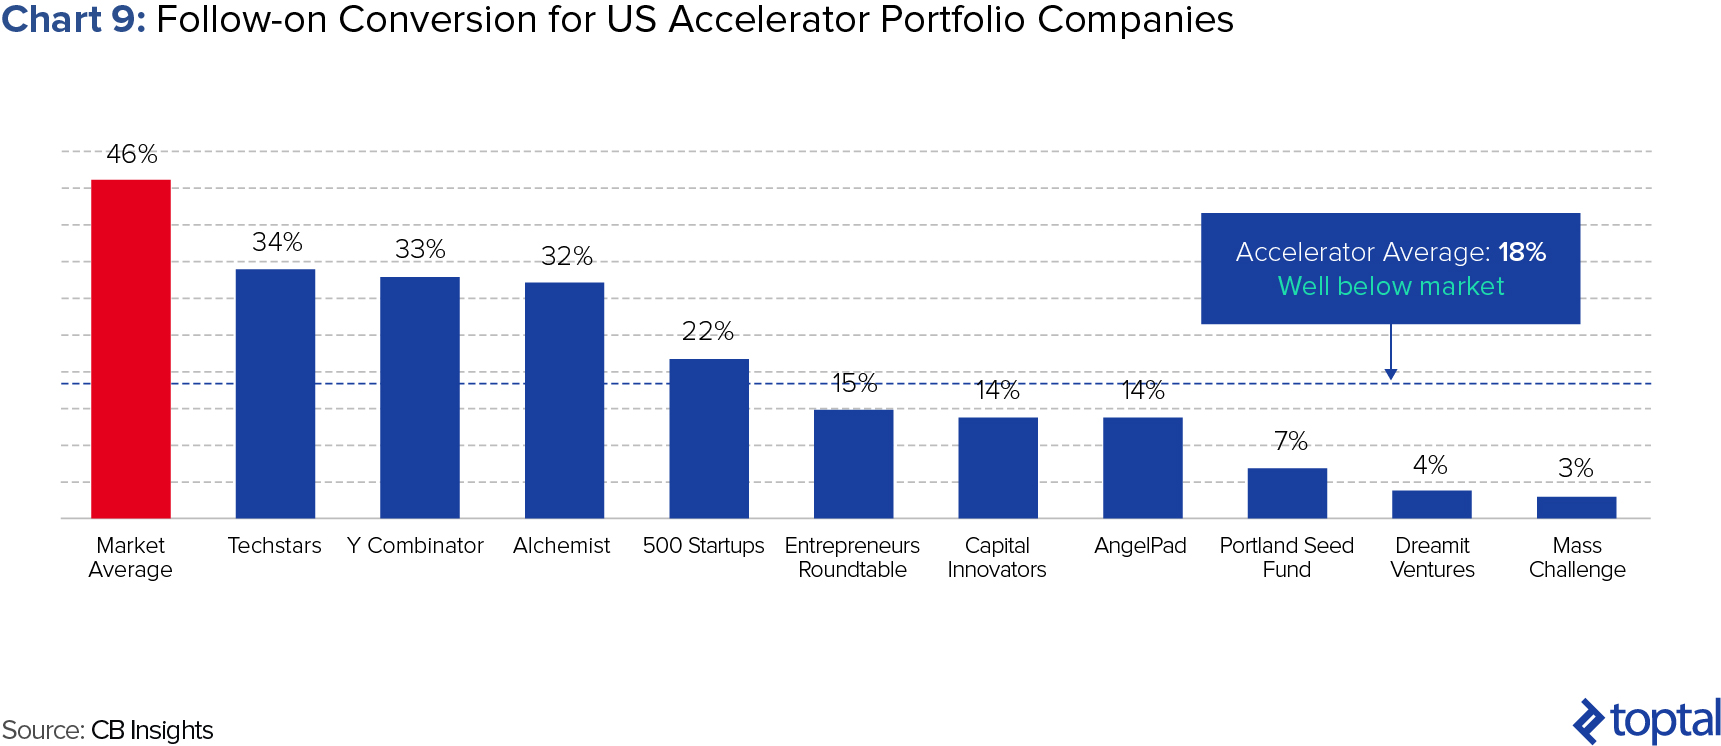 Chart 9: Follow-on Conversion for US Accelerator Portfolio Companies